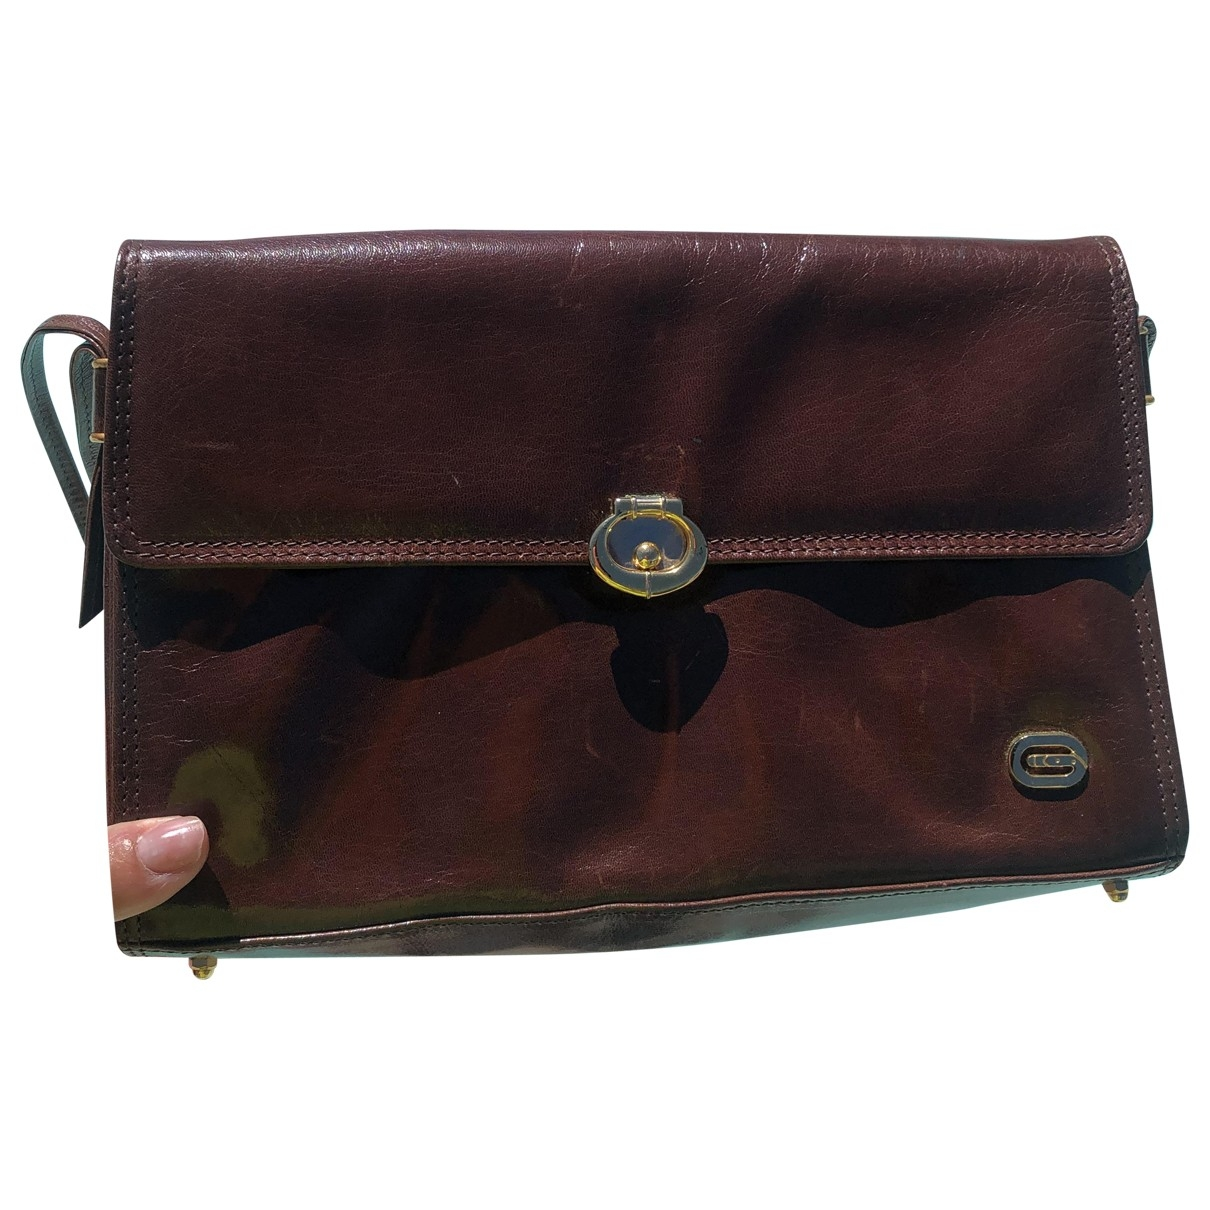 Non Signé / Unsigned \N Brown Leather Clutch bag for Women \N